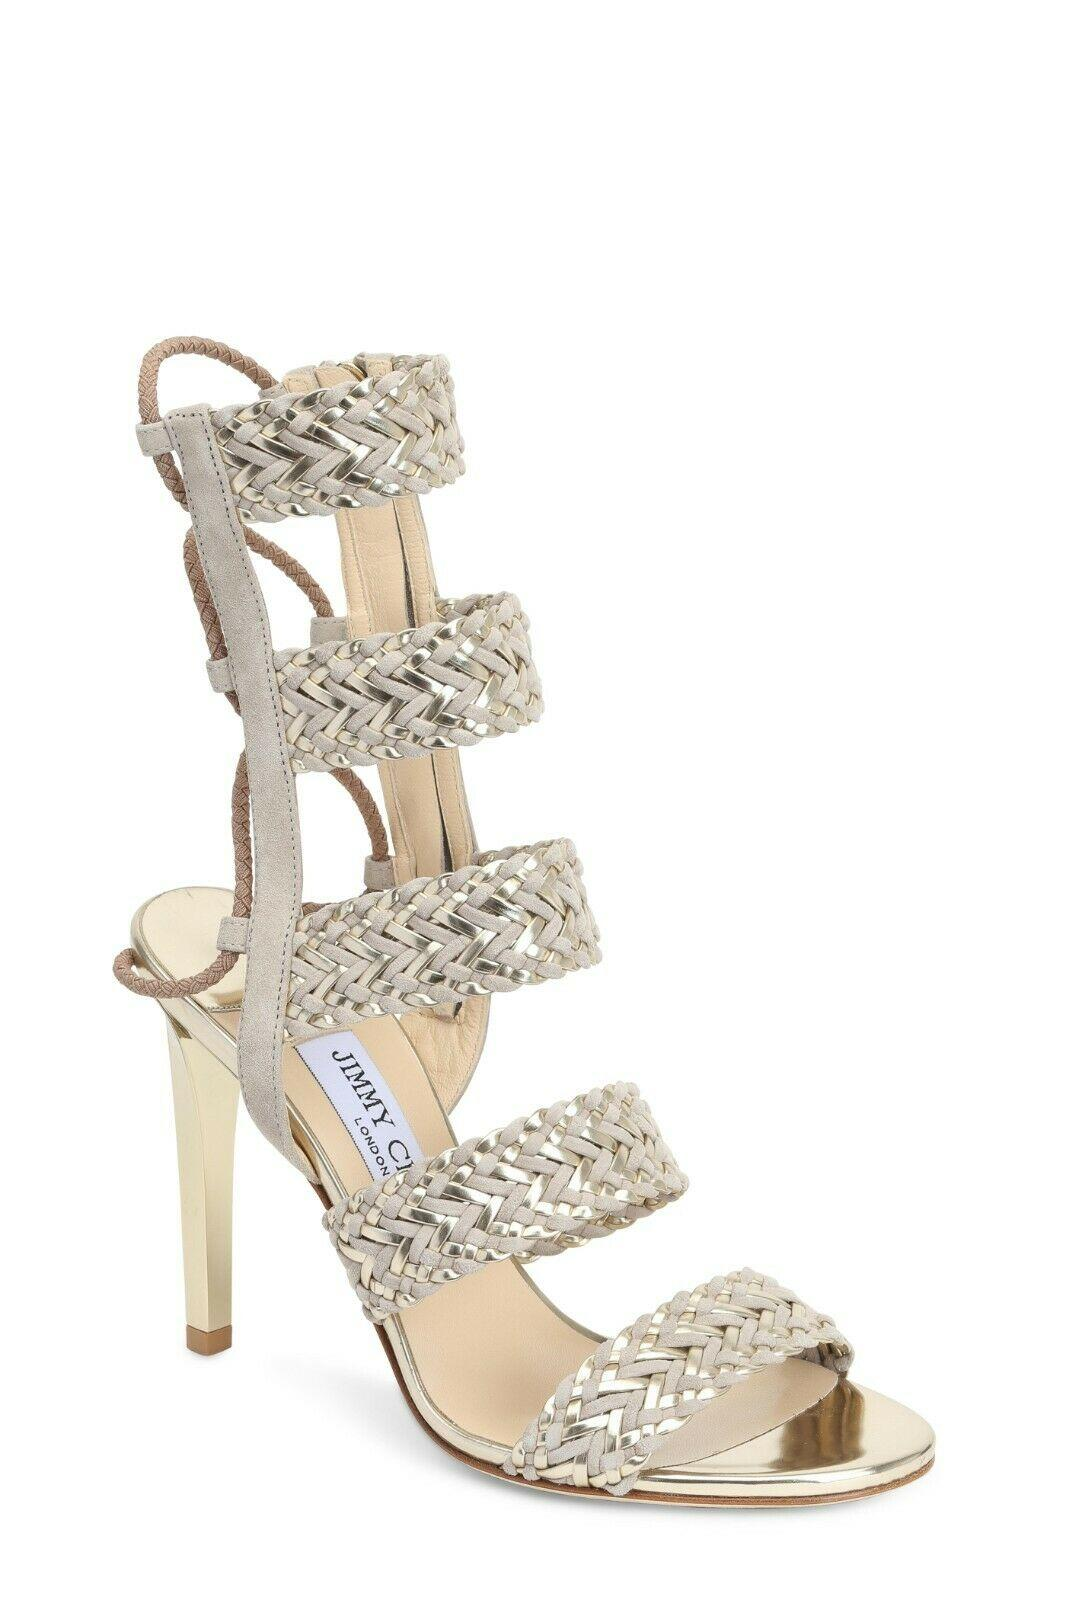 $1,150 JIMMY CHOO Lima Sandals Beige Gold Suede Woven Gladiator Heels Shoes 35.5